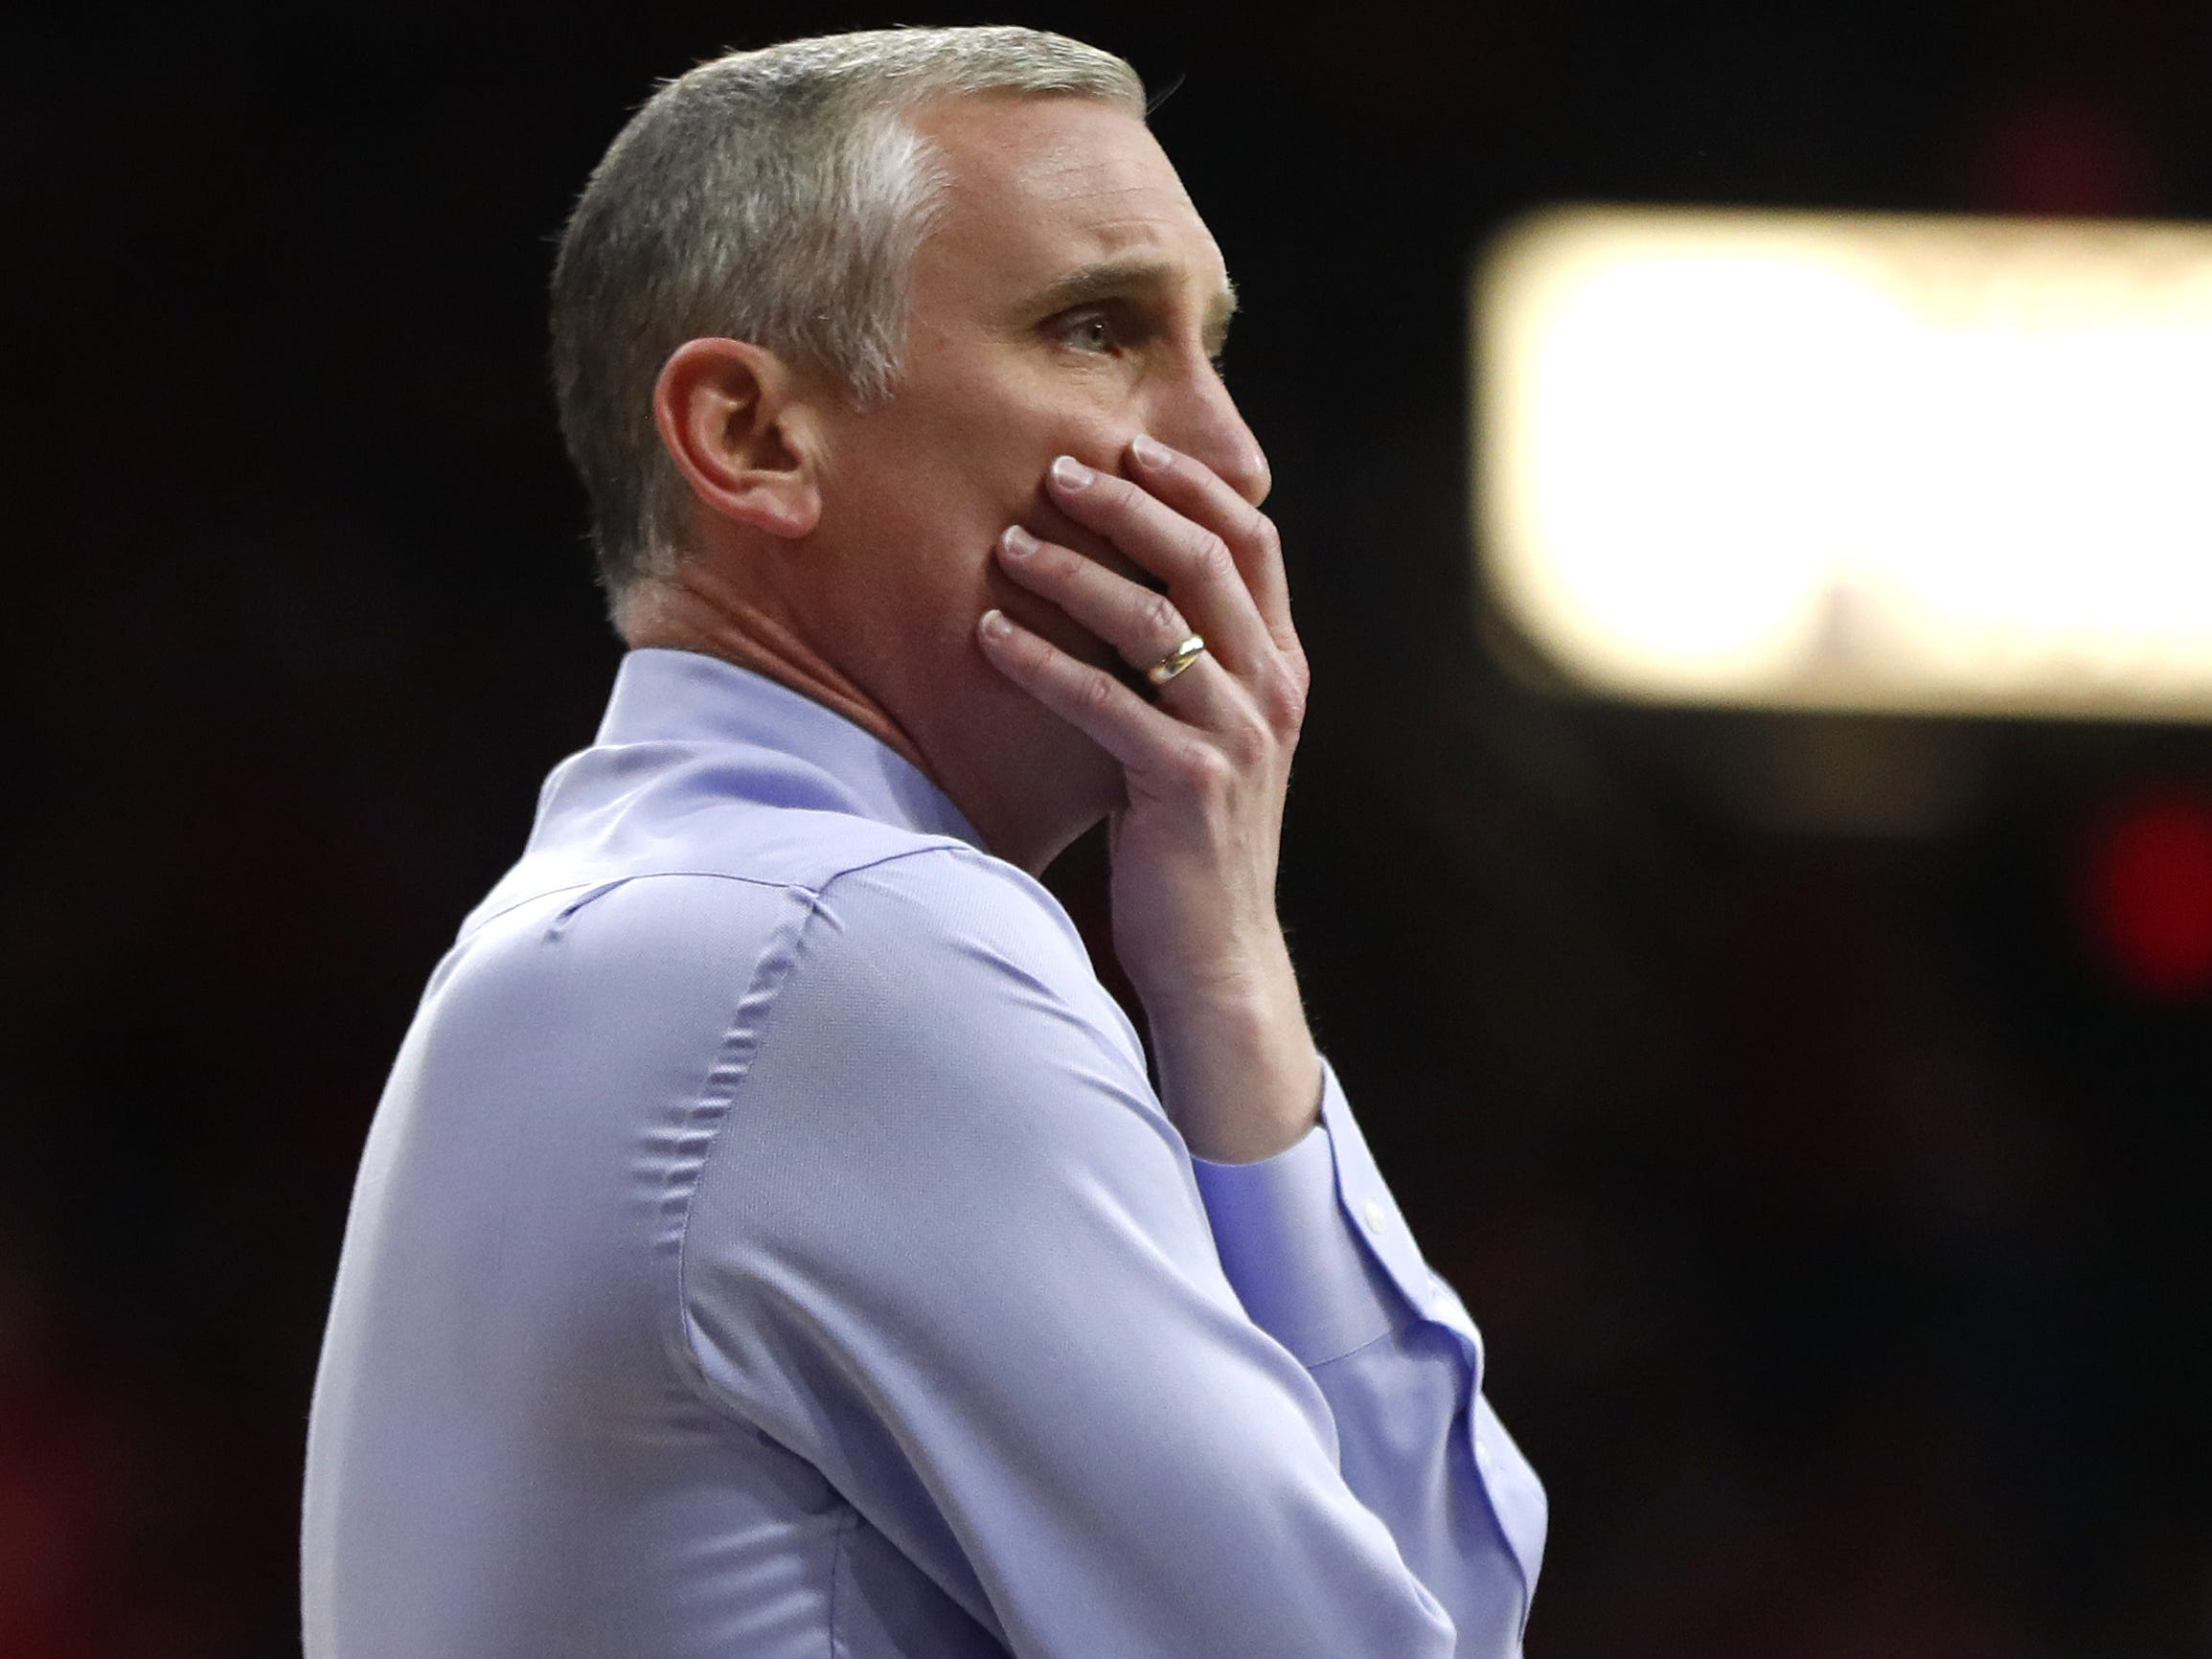 ASU's head coach Bobby Hurley yells to an official during the first half against Arizona at the McKale Memorial Center in Tucson, Ariz. on March 9, 2019.